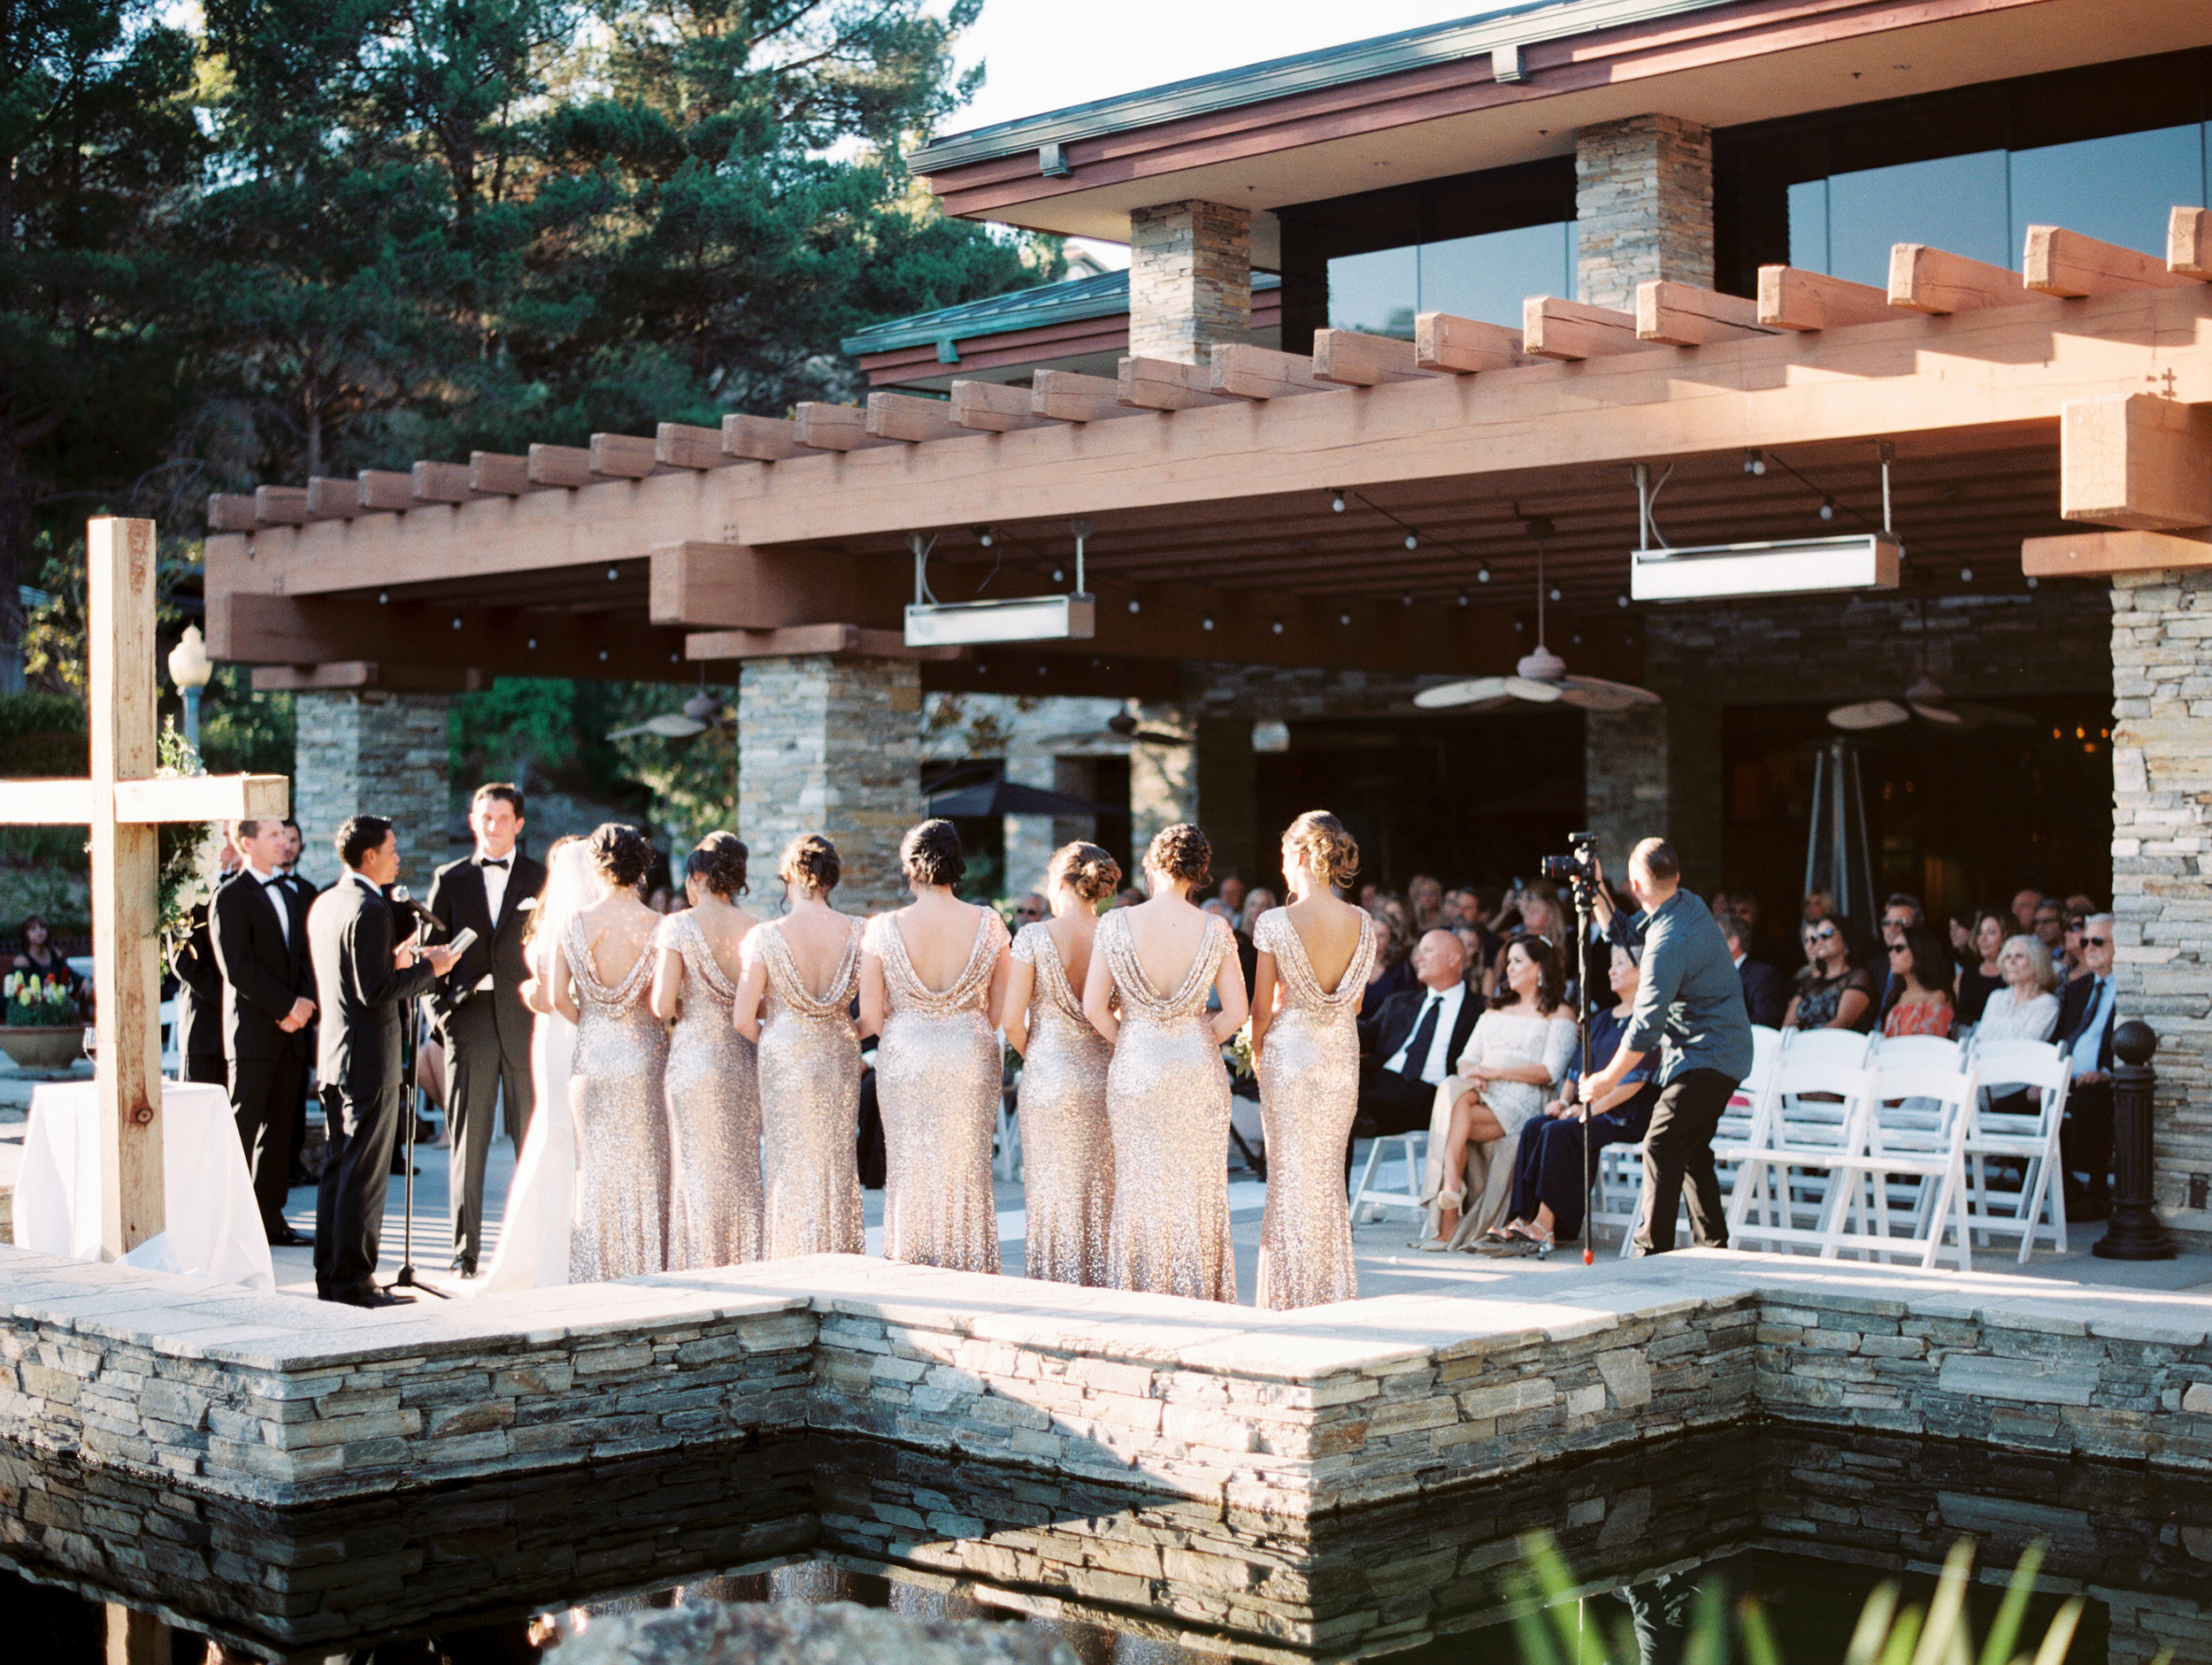 PIROUETTE PAPER COMPANY  |  MALLORY DAWN PHOTOGRAPHY  |  THEATER 10 WEDDING FILMS  |  ORANGE COUNTY WEDDING  |  OCTOBER WEDDING COUNTRY CLUB